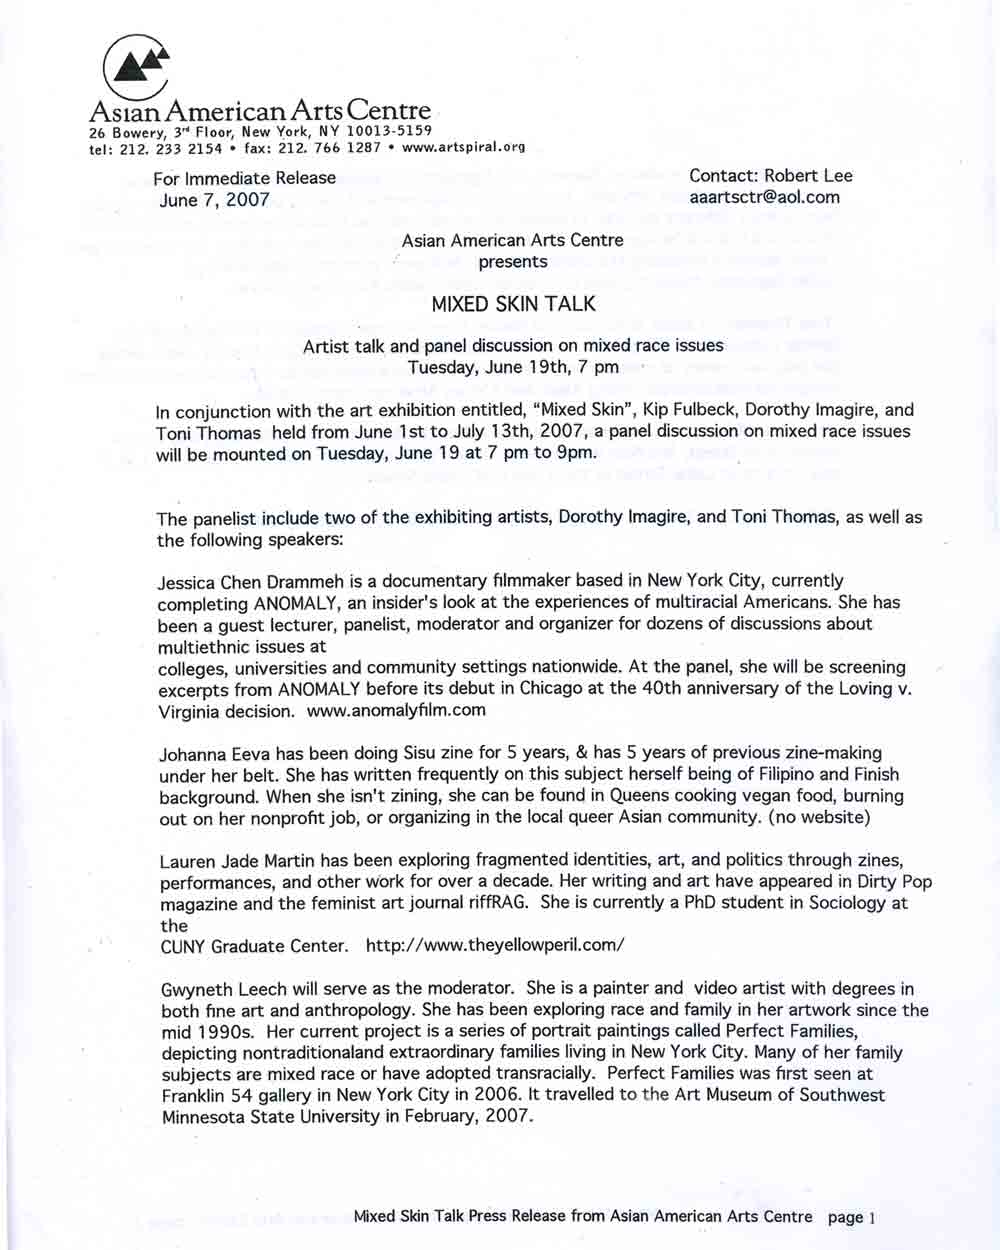 Mixed Skin press release, pg 1